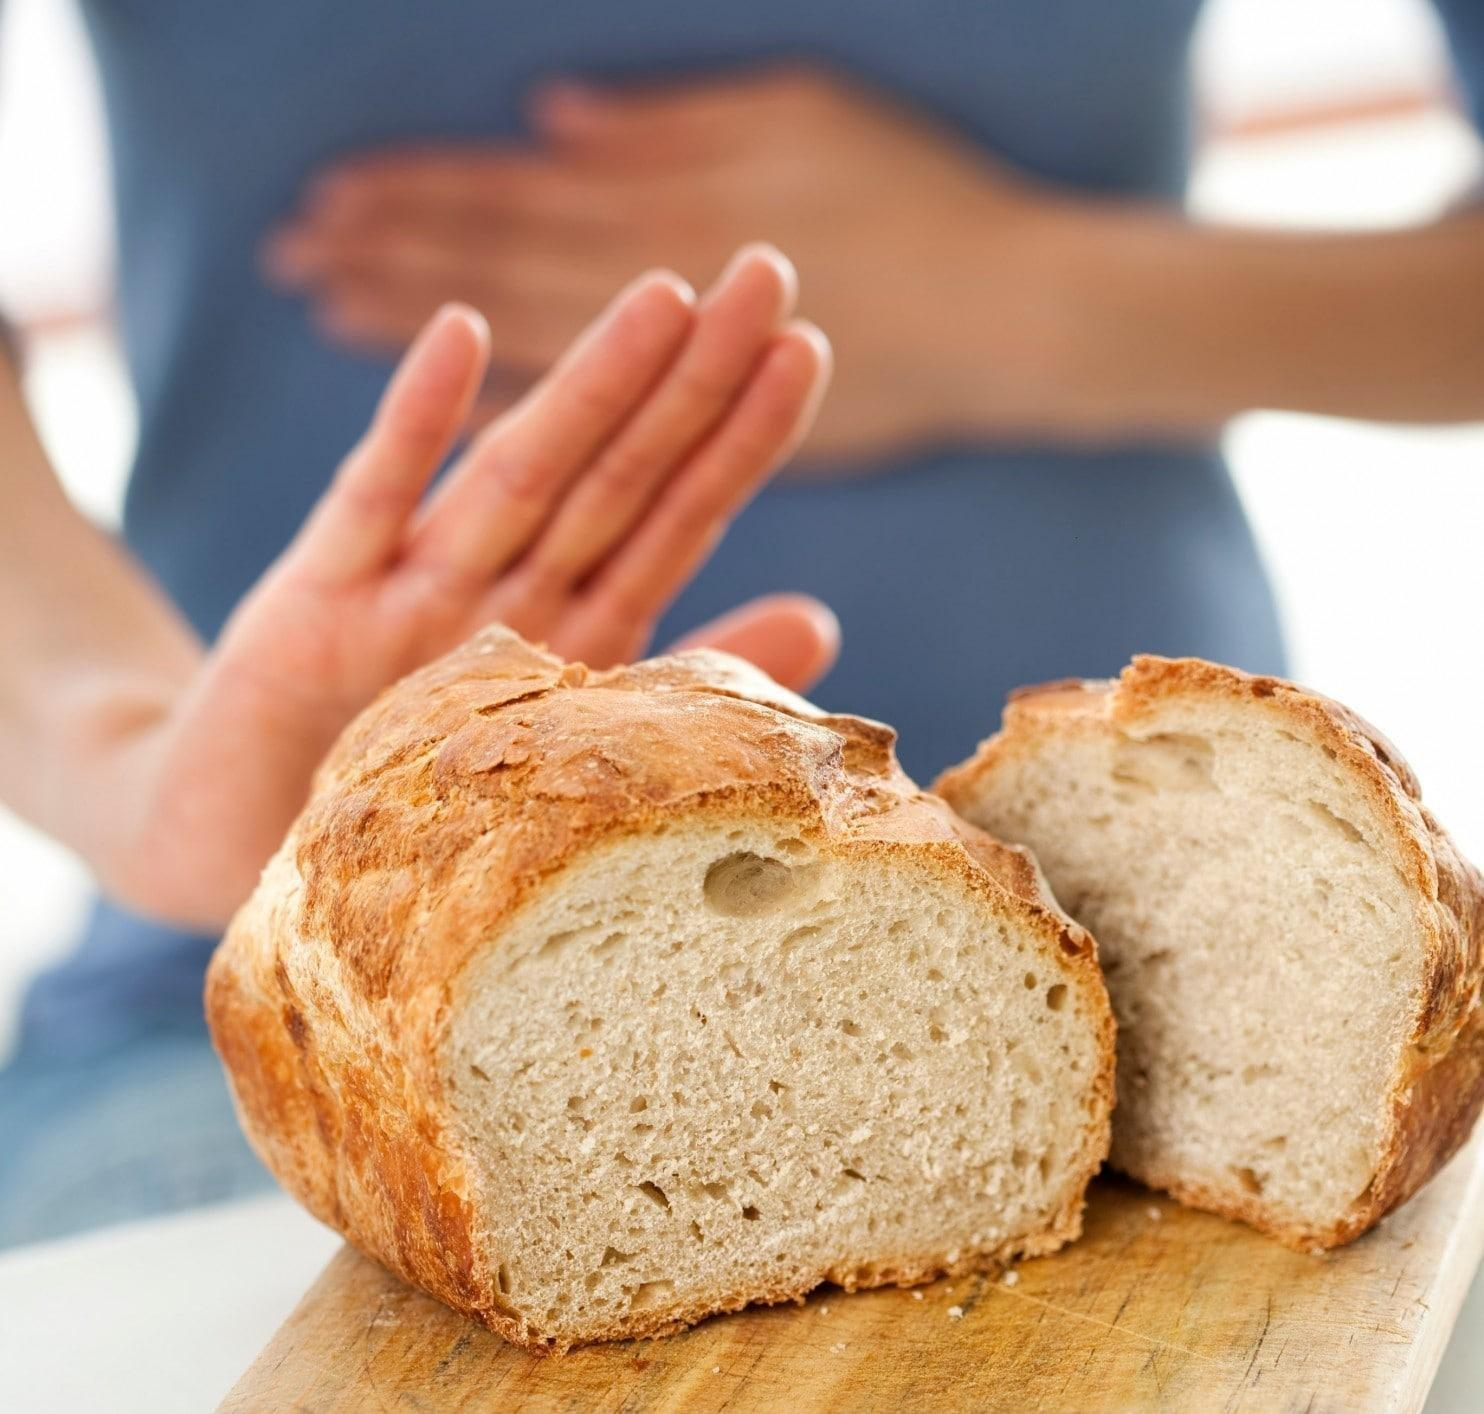 Gluten-free diets may be tied to an increased risk of Type 2 diabetes